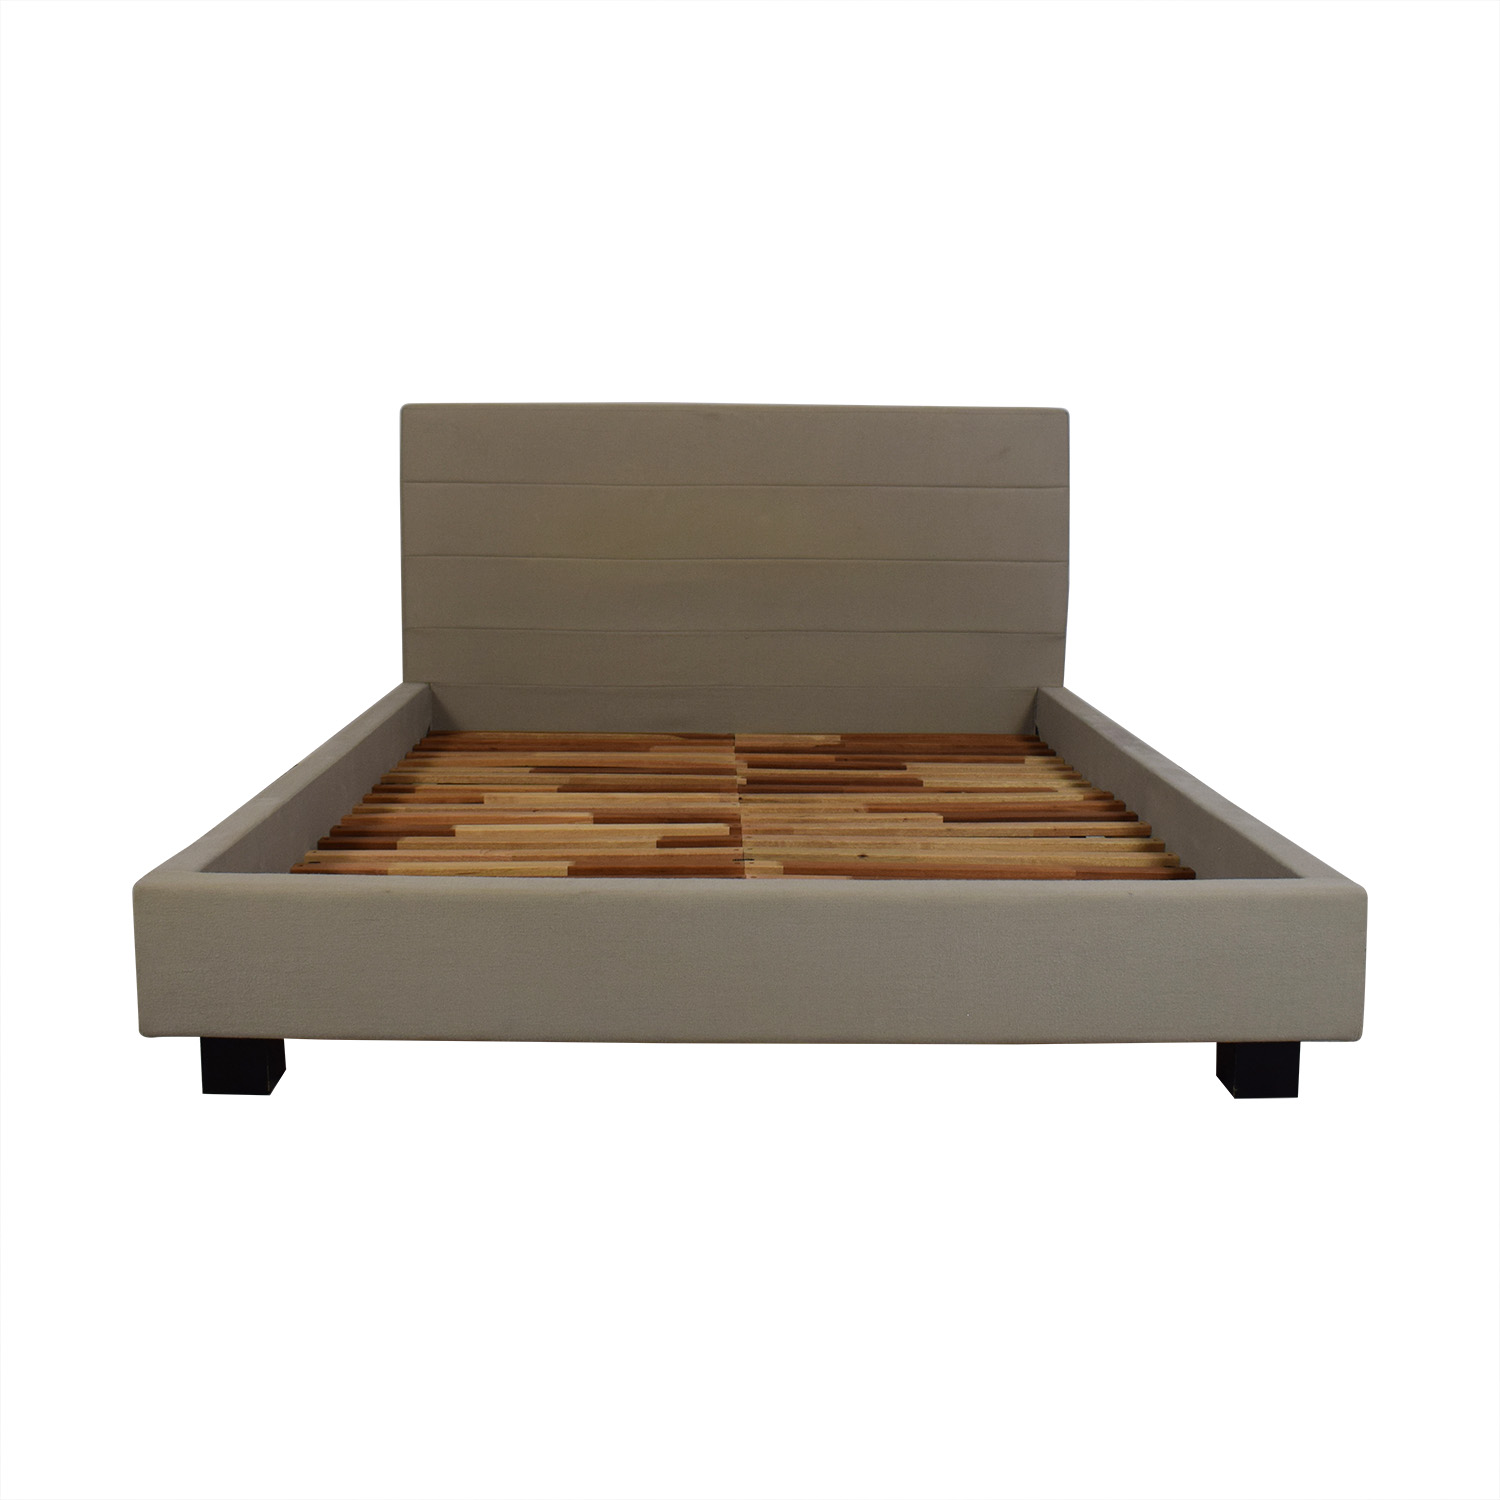 CB2 Queen Bed Frame CB2